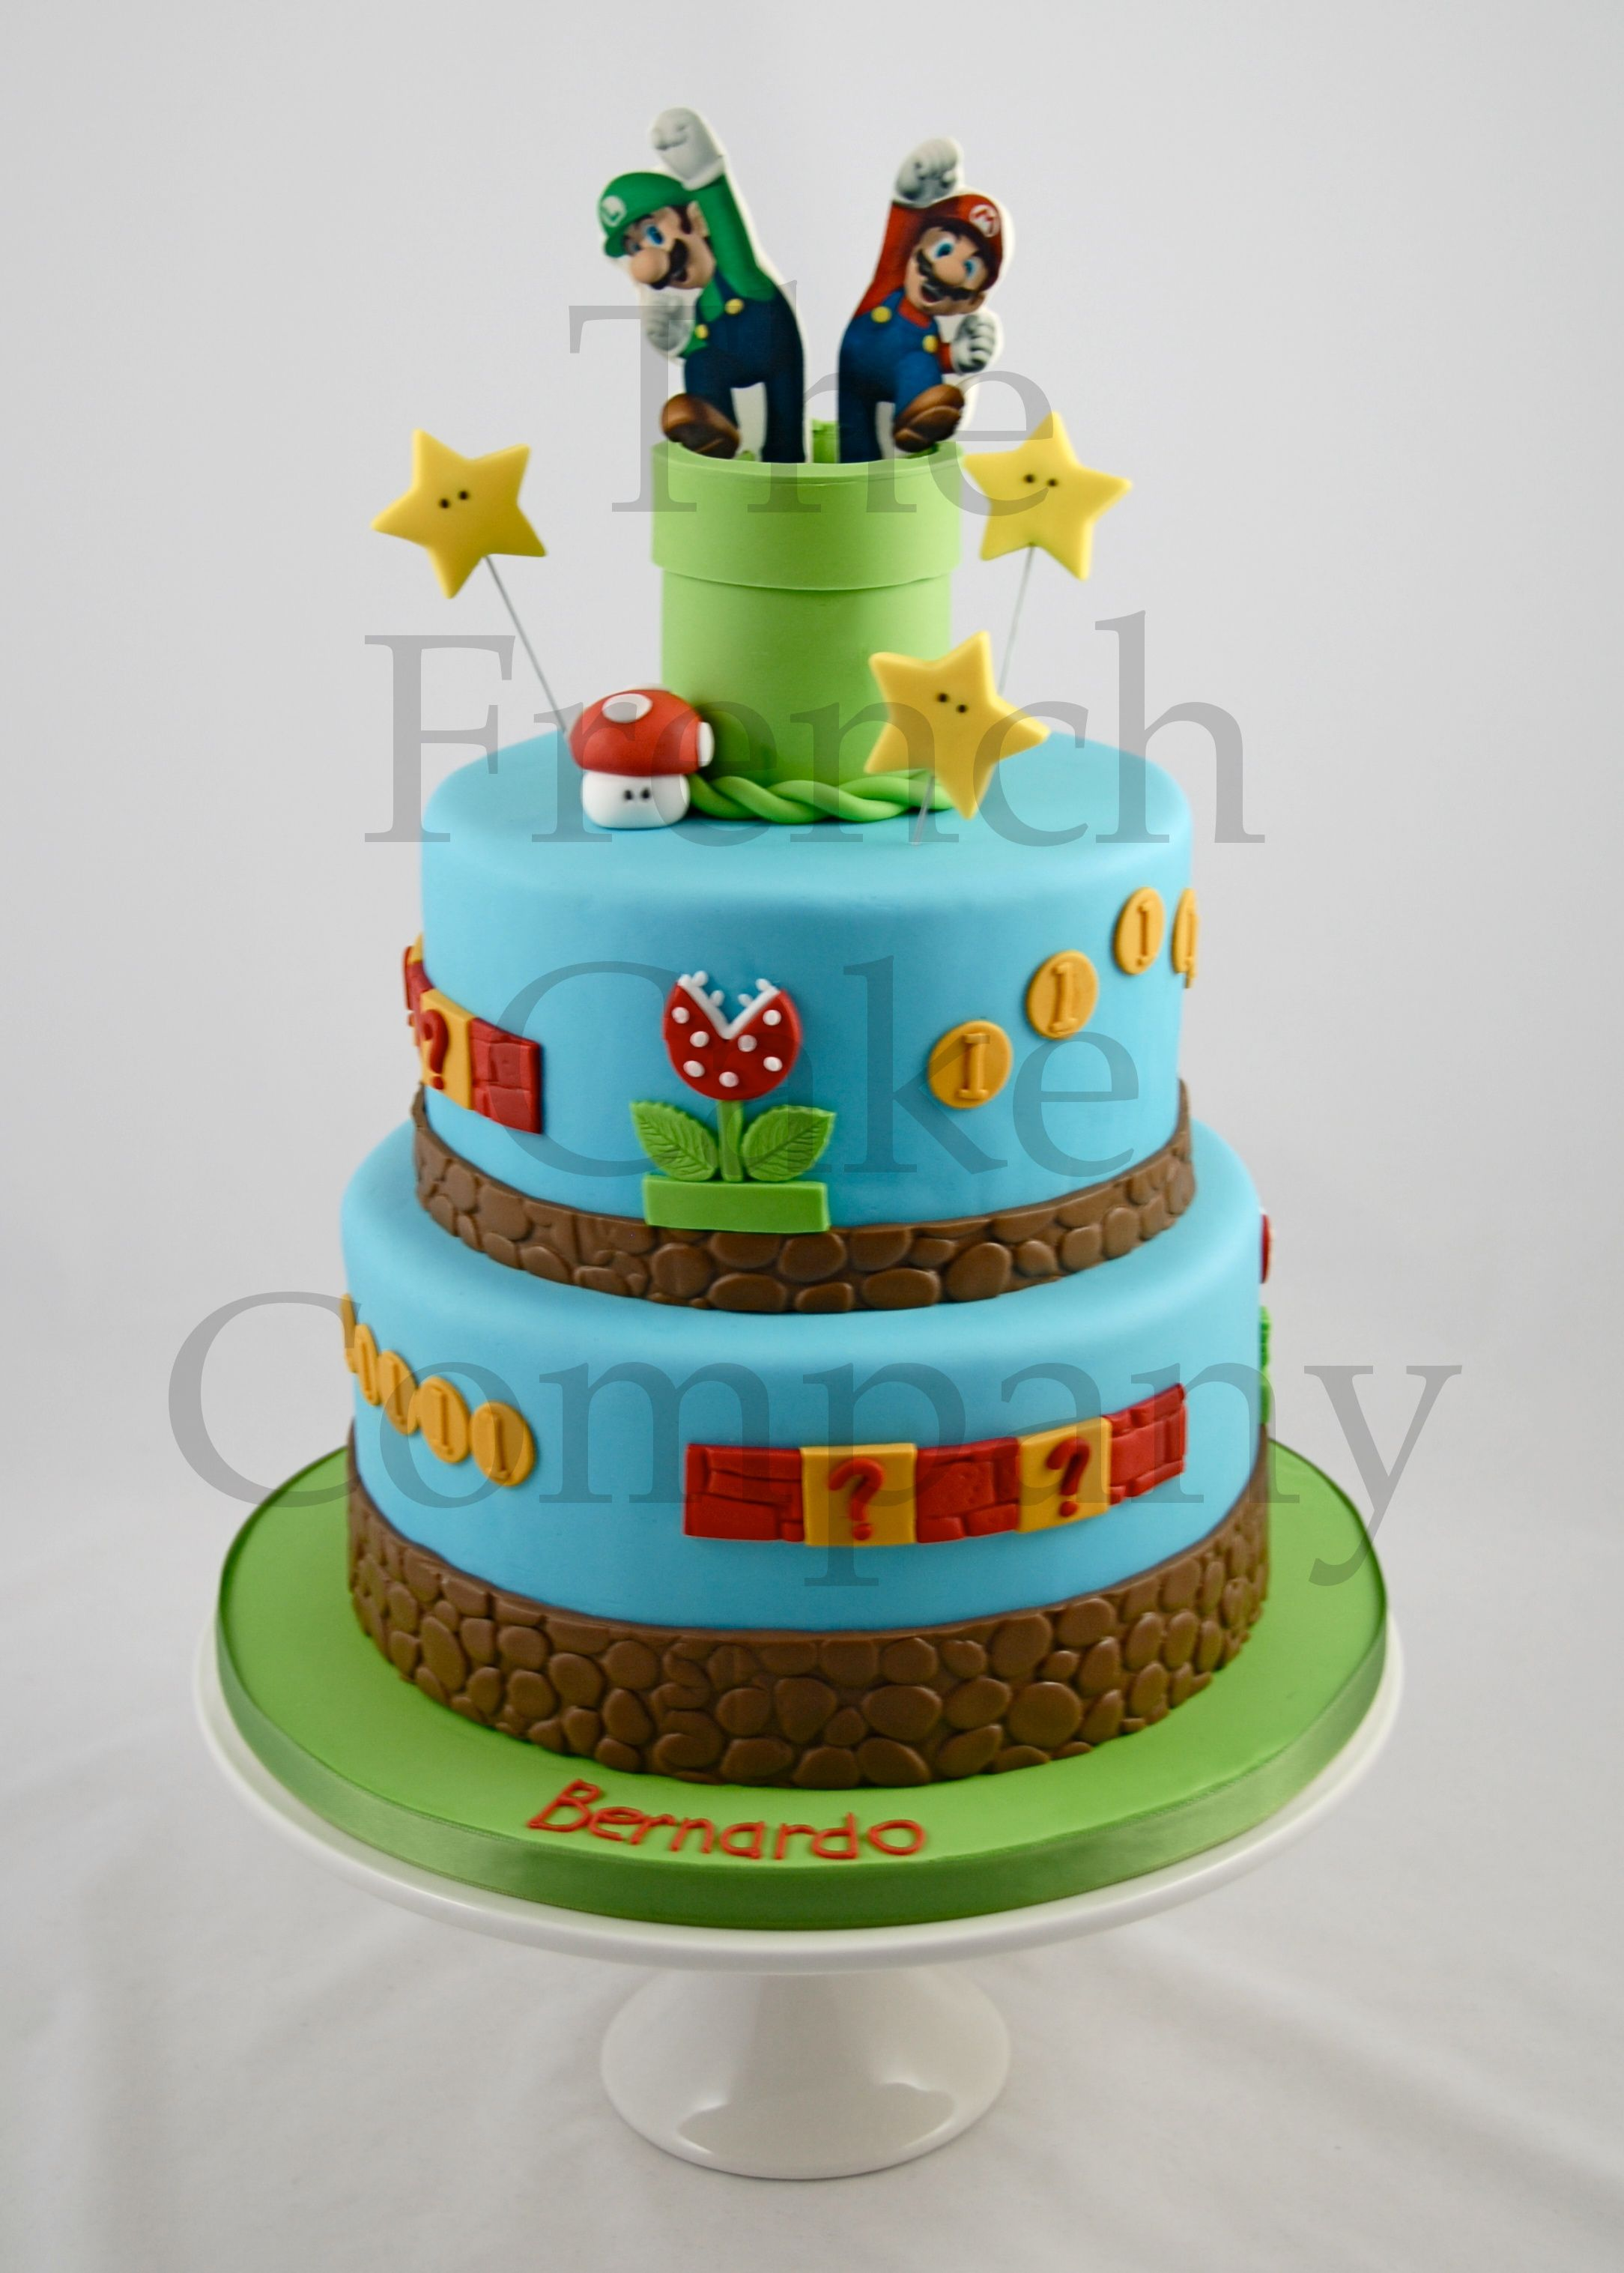 cake for boys mario and luigi gateau d 39 anniversaire pour enfants garcon mario et luigi. Black Bedroom Furniture Sets. Home Design Ideas